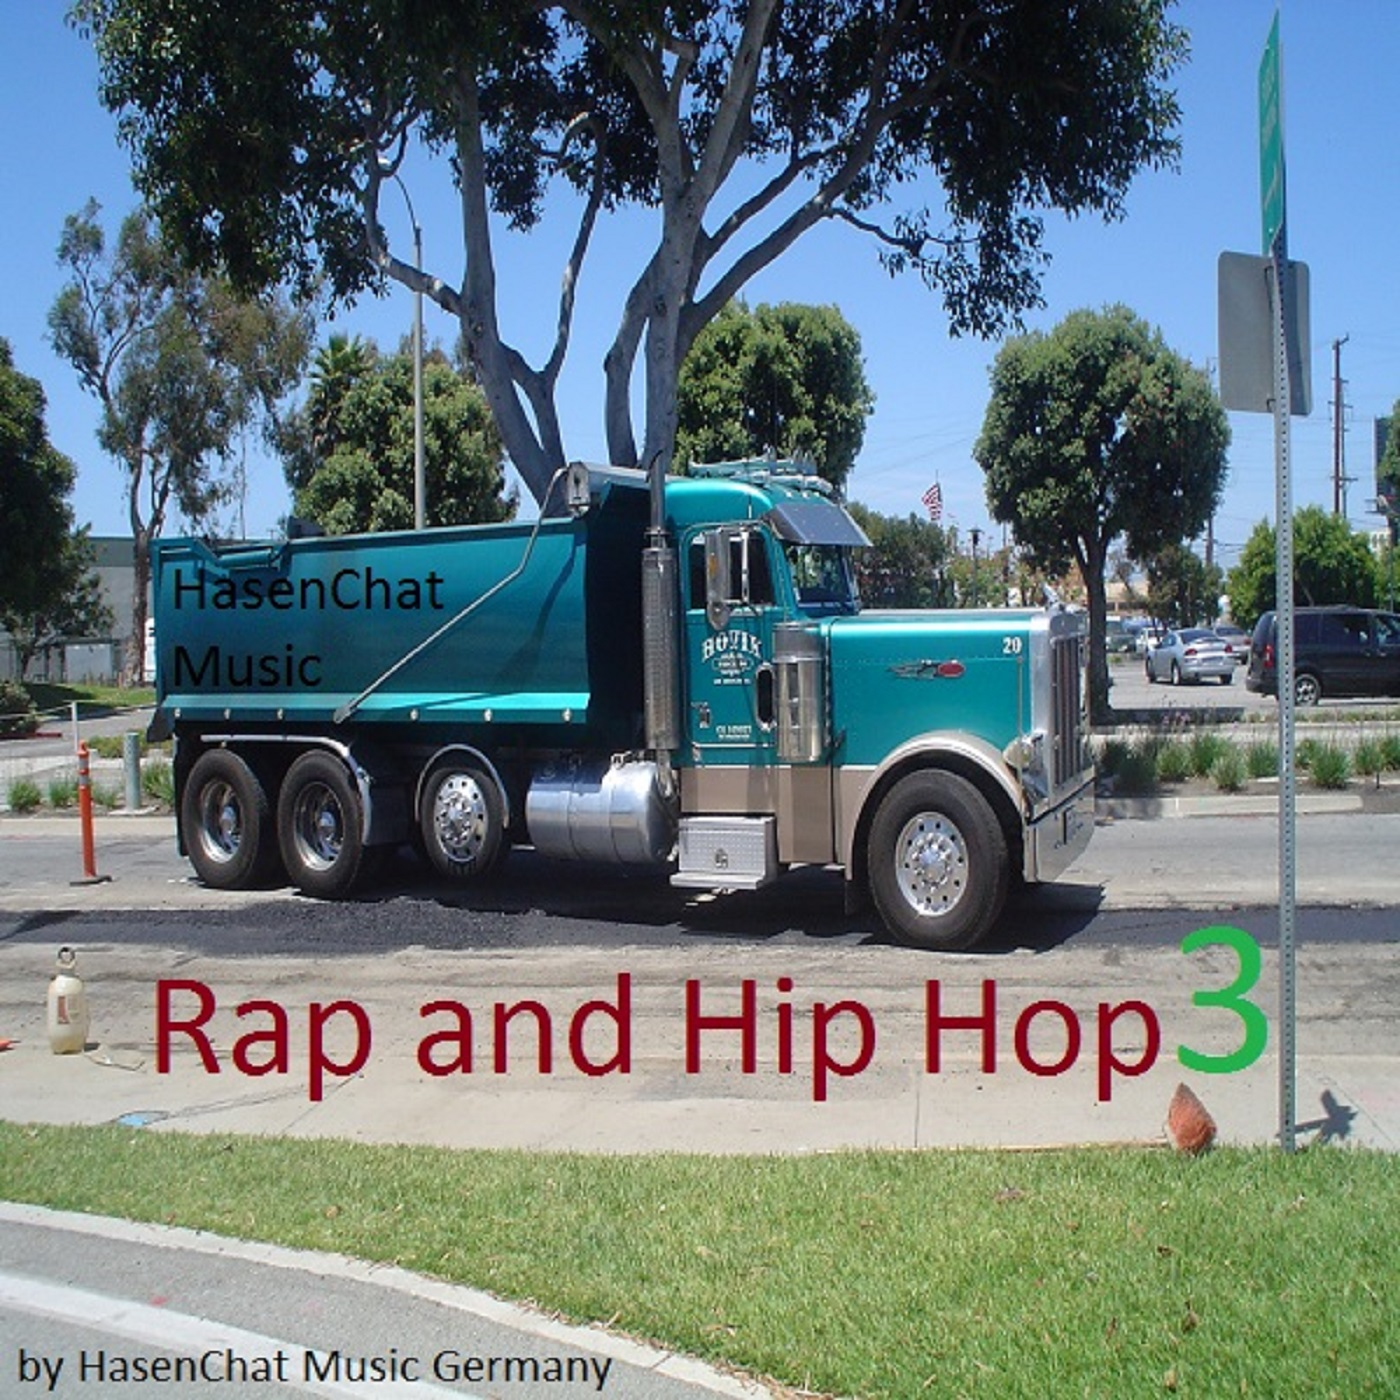 HasenChat Music - Rap and Hip Hop - Episode 3